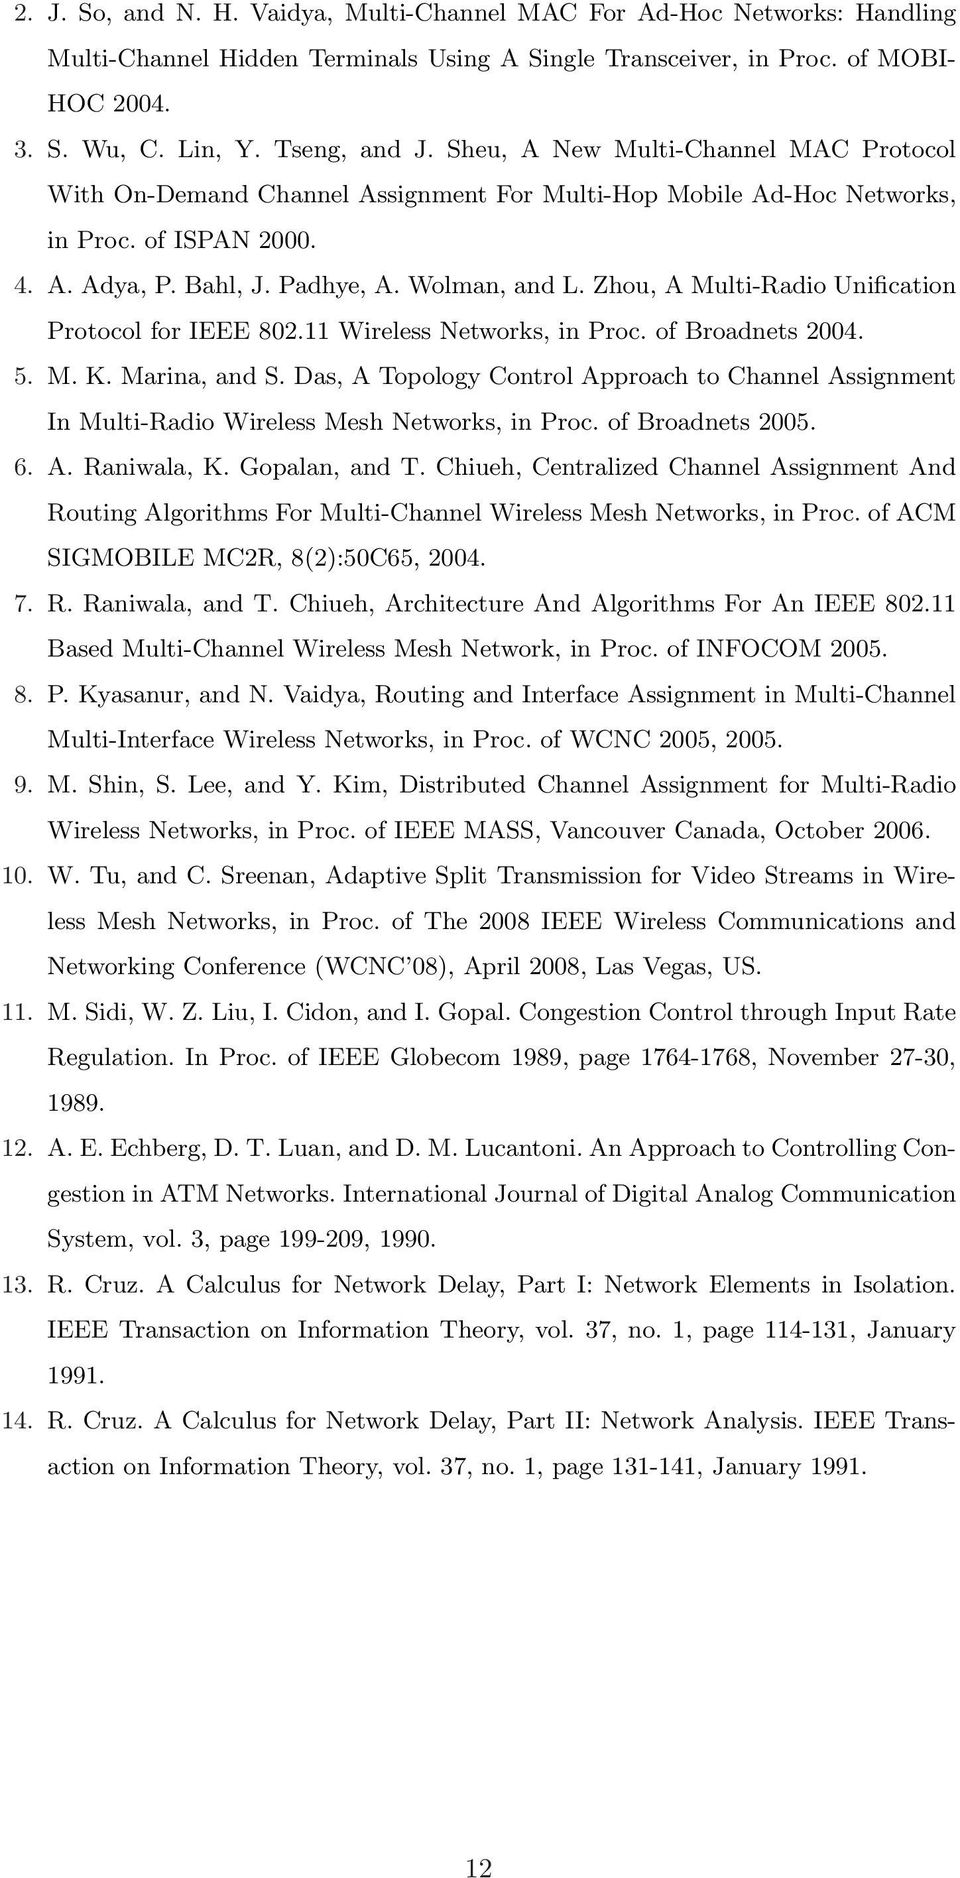 Zhou, A Multi-Radio Unification Protocol for IEEE 802.11 Wireless Networks, in Proc. of Broadnets 2004. 5. M. K. Marina, and S.